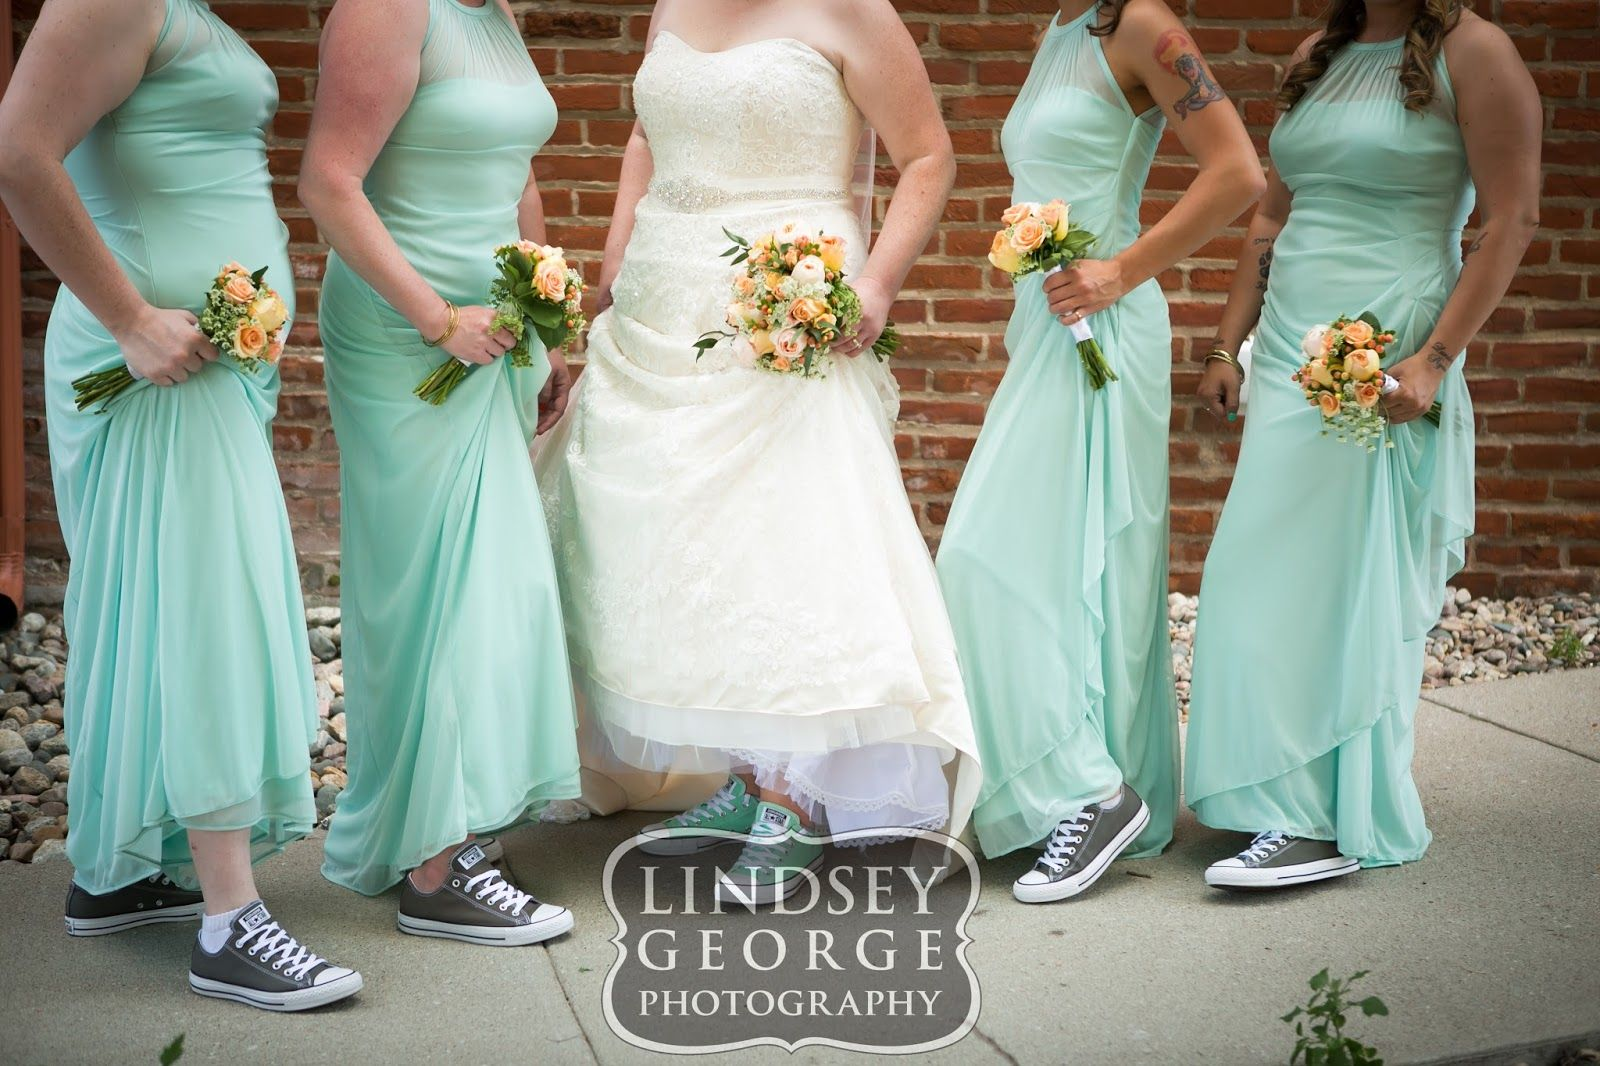 Bridesmaids and bride wearing chucks Chuck Taylor Converse fun and  comfortable wedding shoes - click to view full gallery 769ef160d